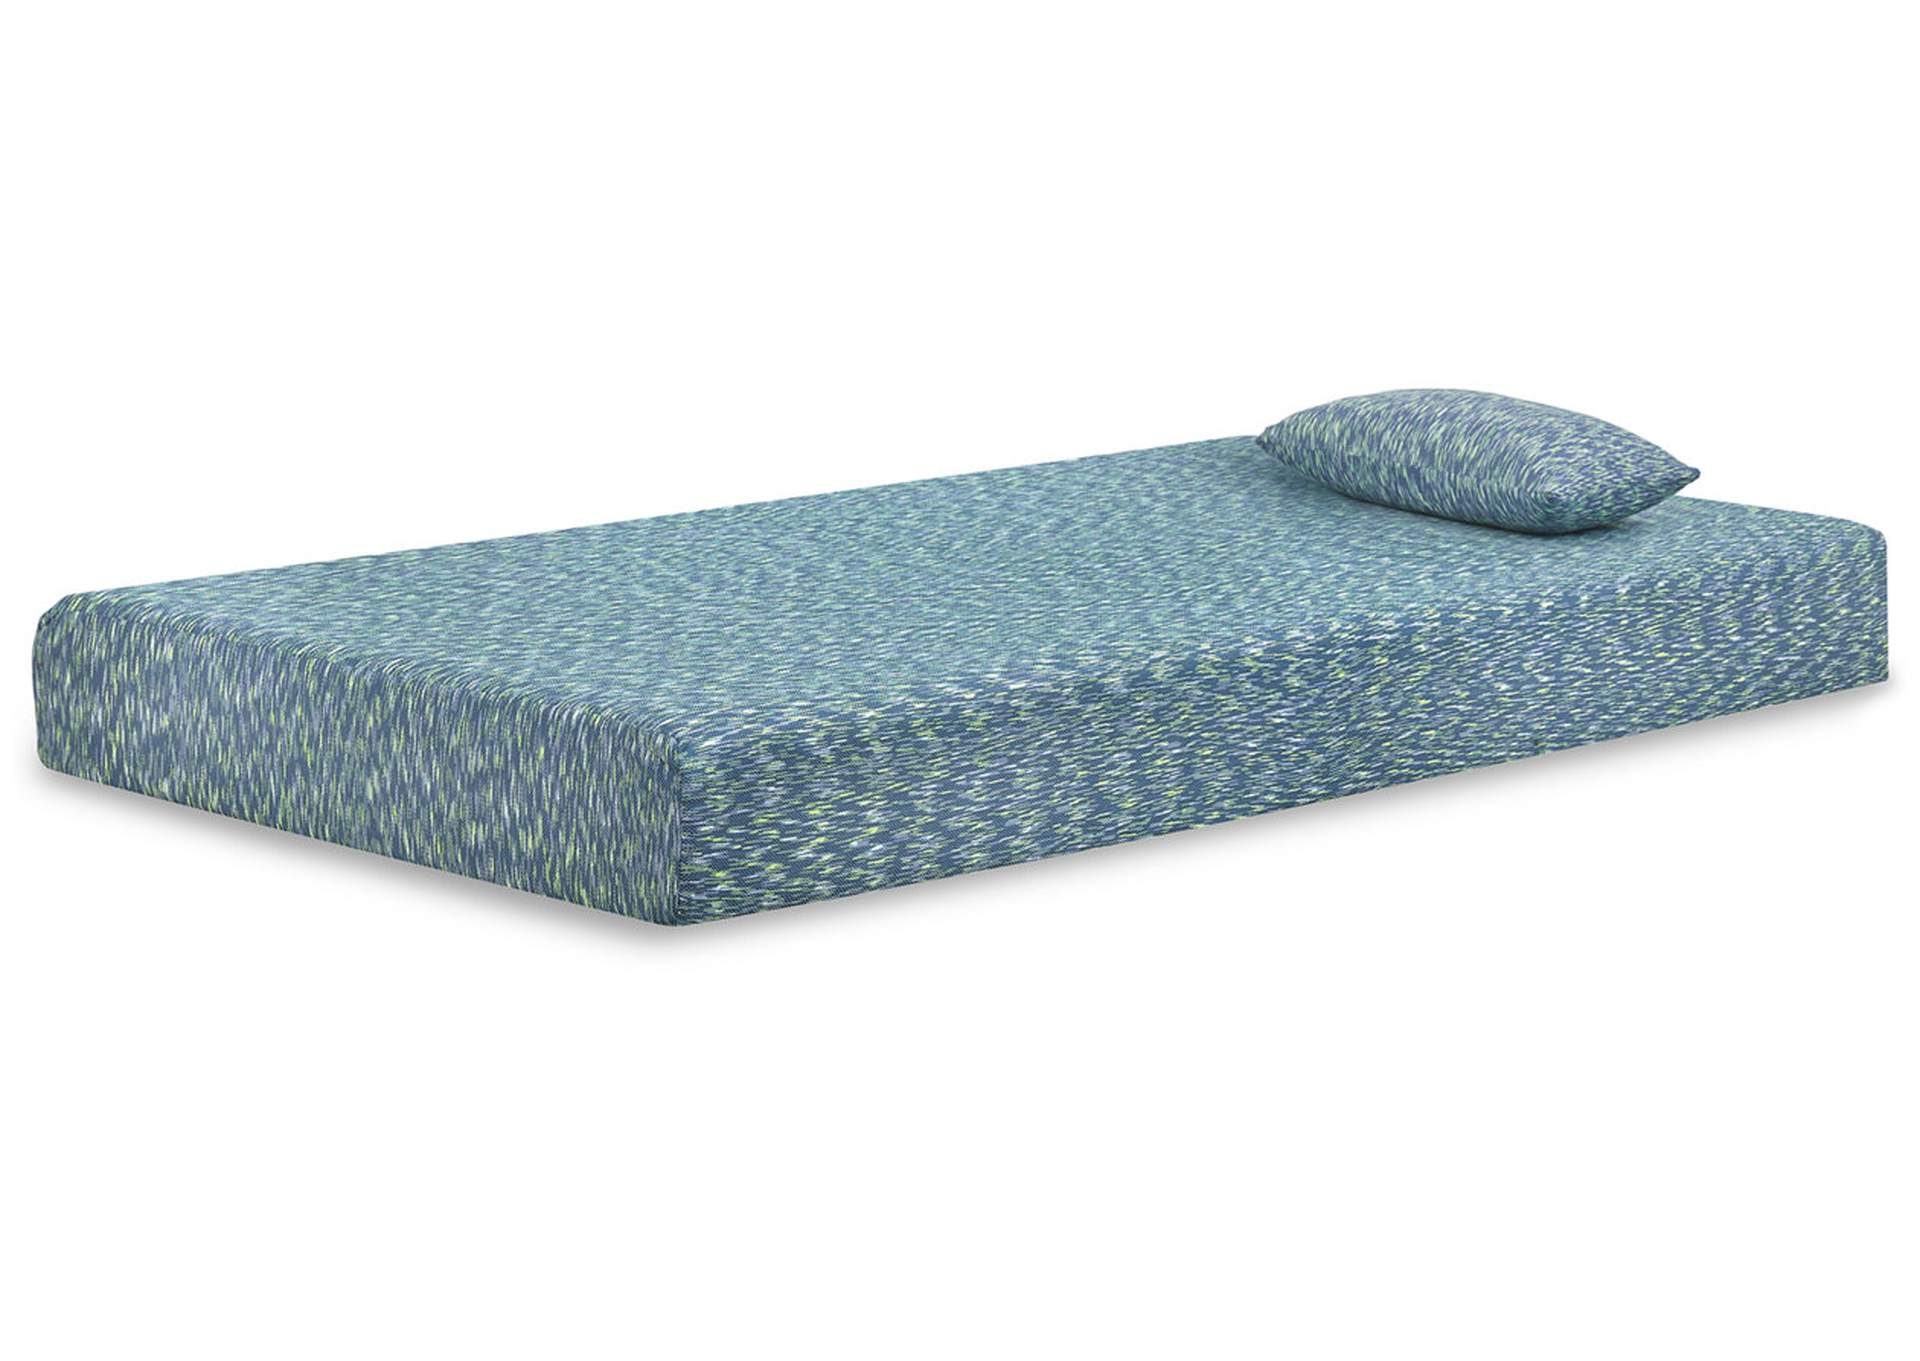 iKidz Blue Twin Mattress and Pillow,Sierra Sleep by Ashley